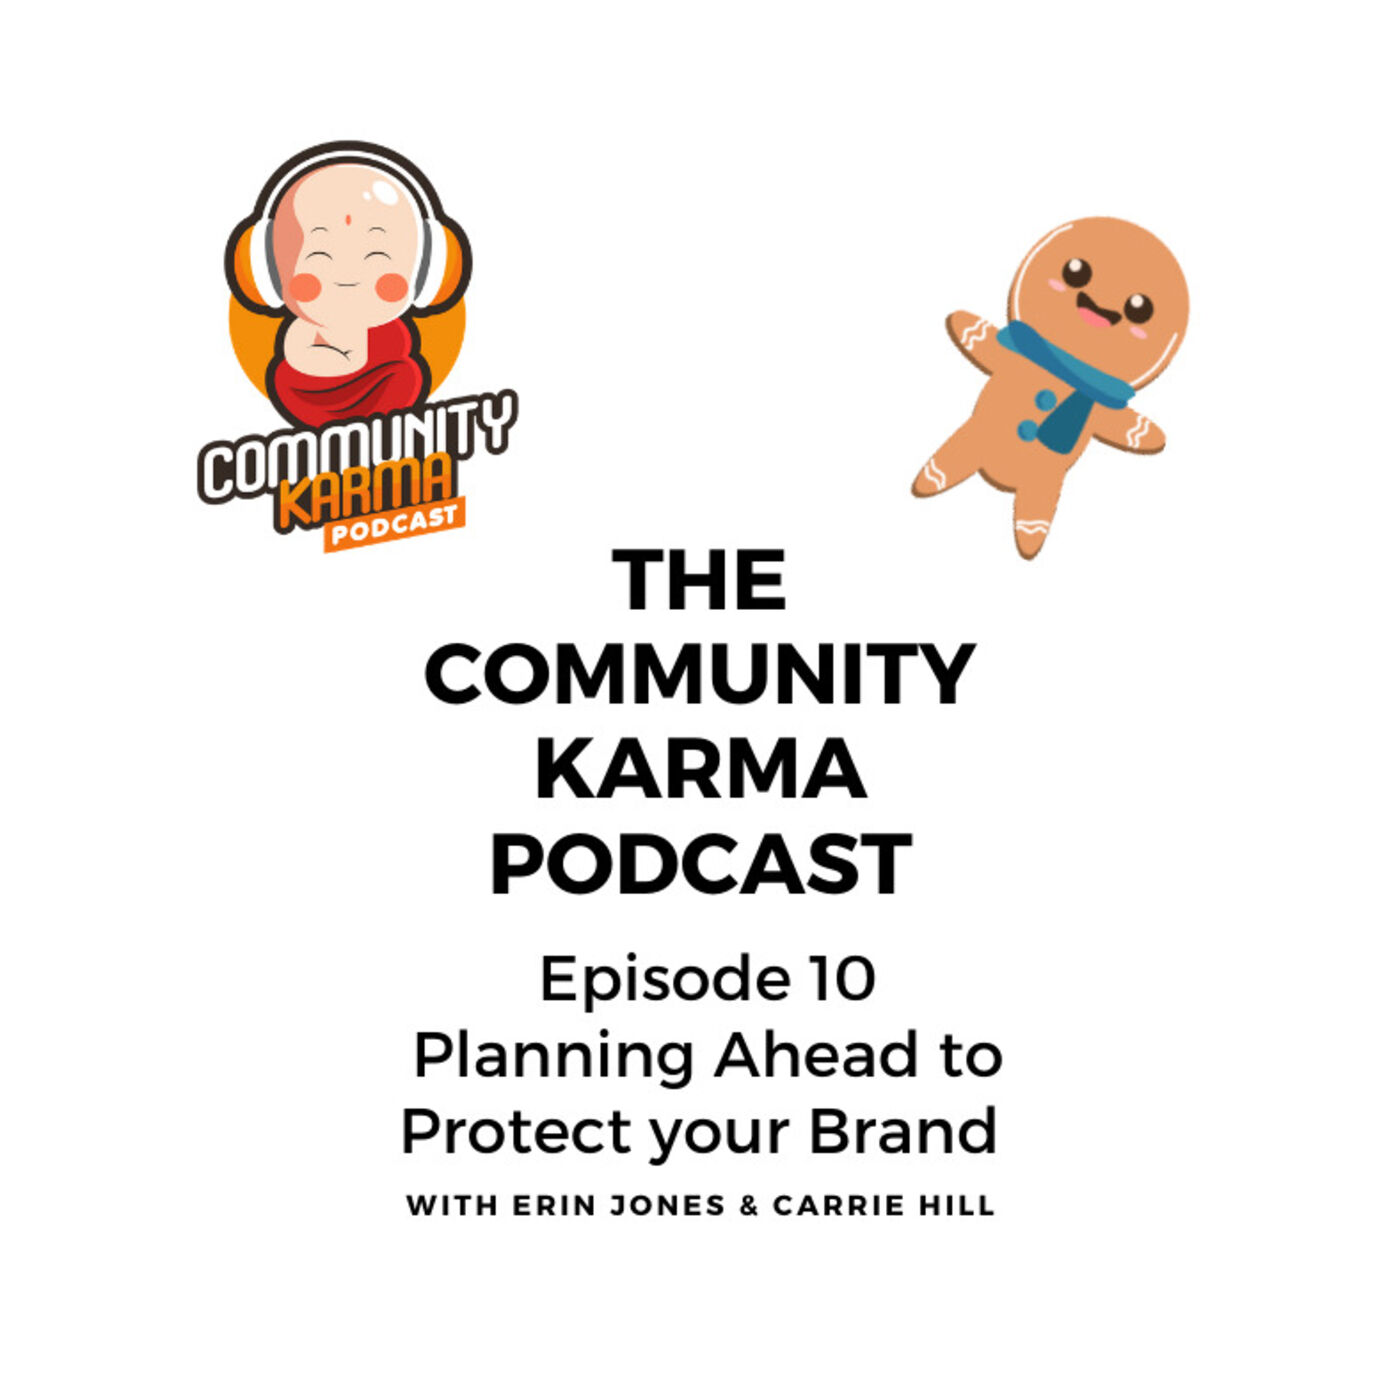 Episode 10: Planning Ahead to Protect your Brand